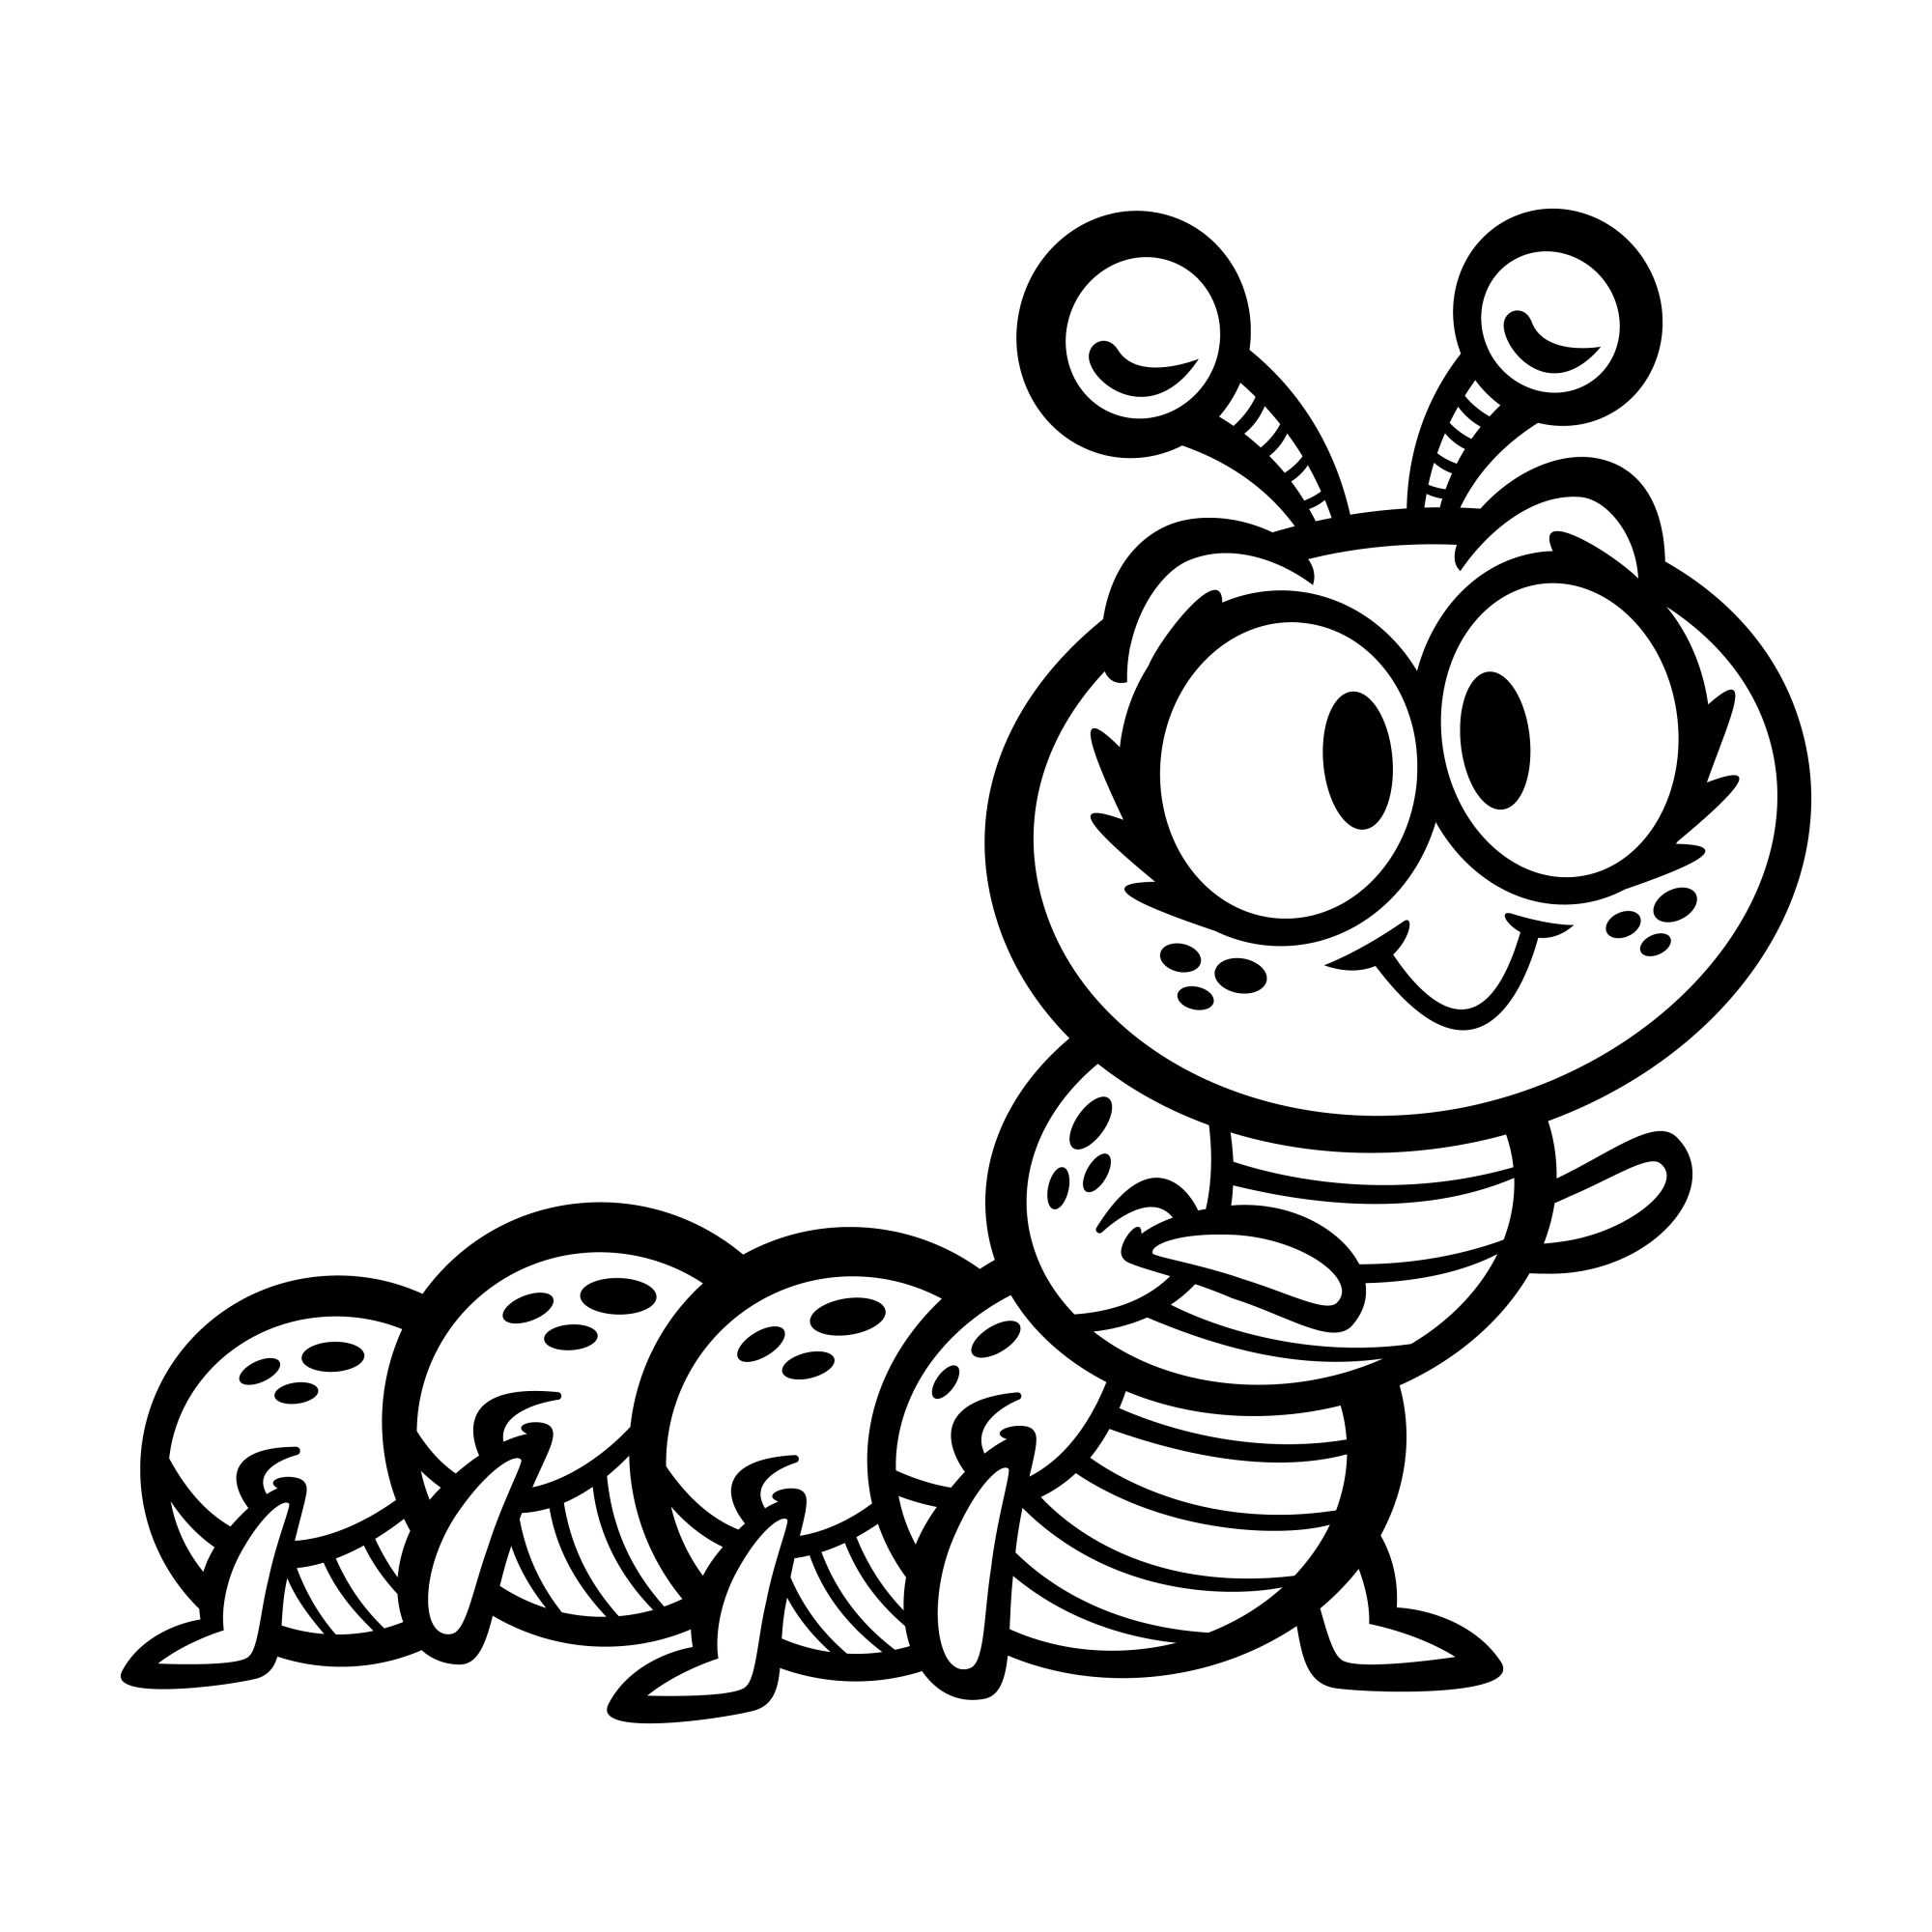 Cute Crawling Caterpillar Bug cartoon